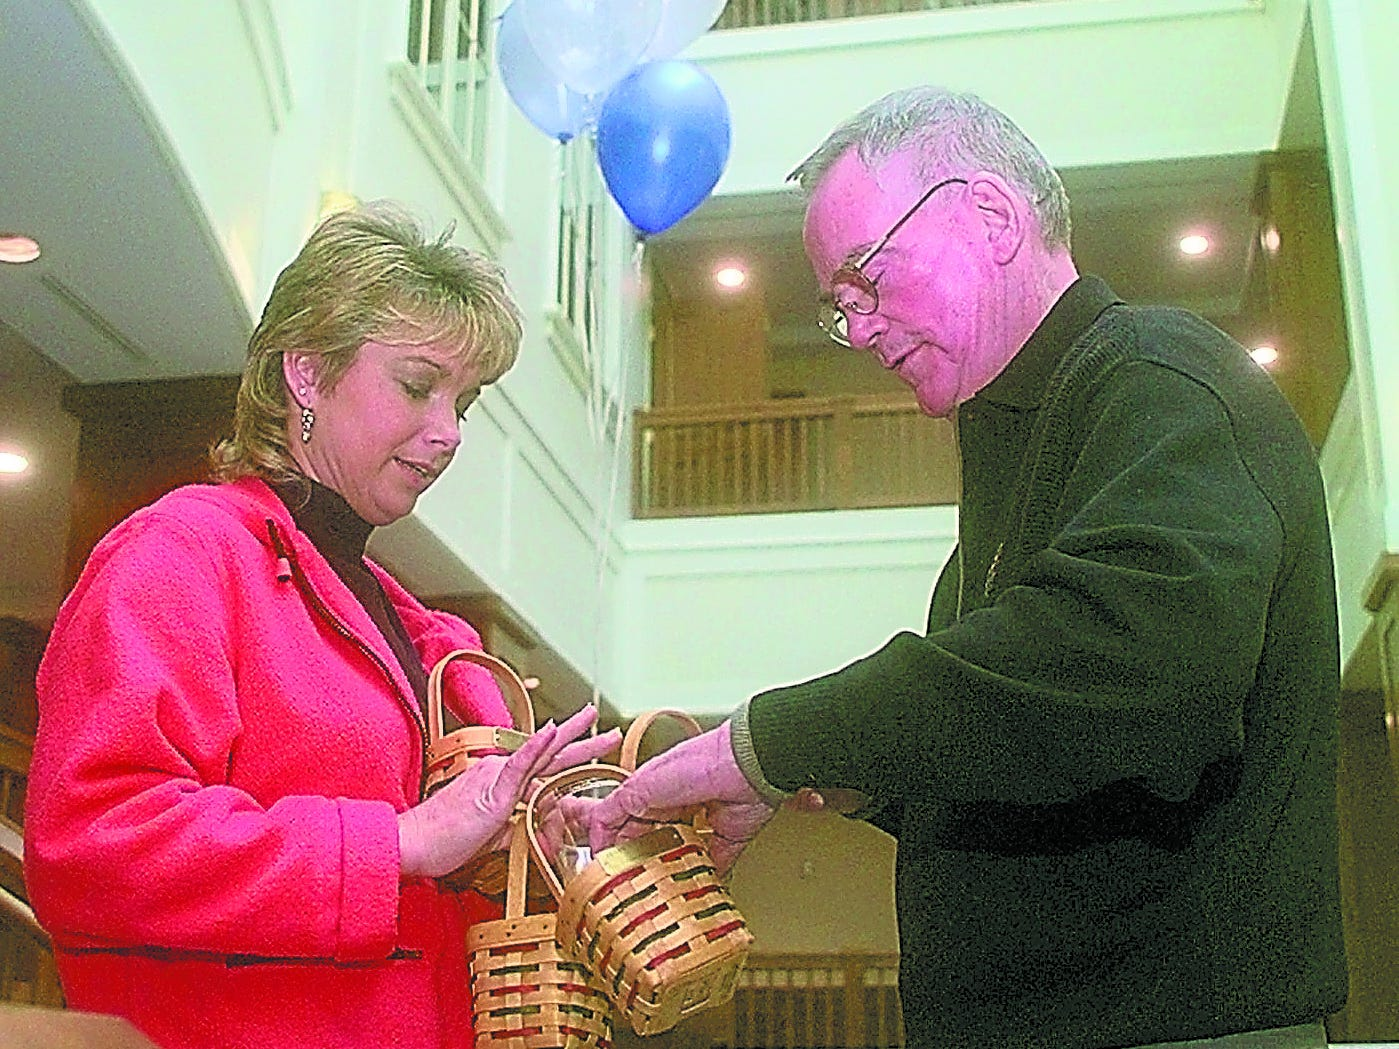 Founder and CEO Dave Longaberger signs a handful of employee holiday baskets for telephone technician Pamela Lutrell, who gathered up baskets from fellow employees to have Dave sign all at once. The Longaberger Company was celebrating the move into their new basket-shaped national headquarters on Wednesday, Dec. 17, 1997.